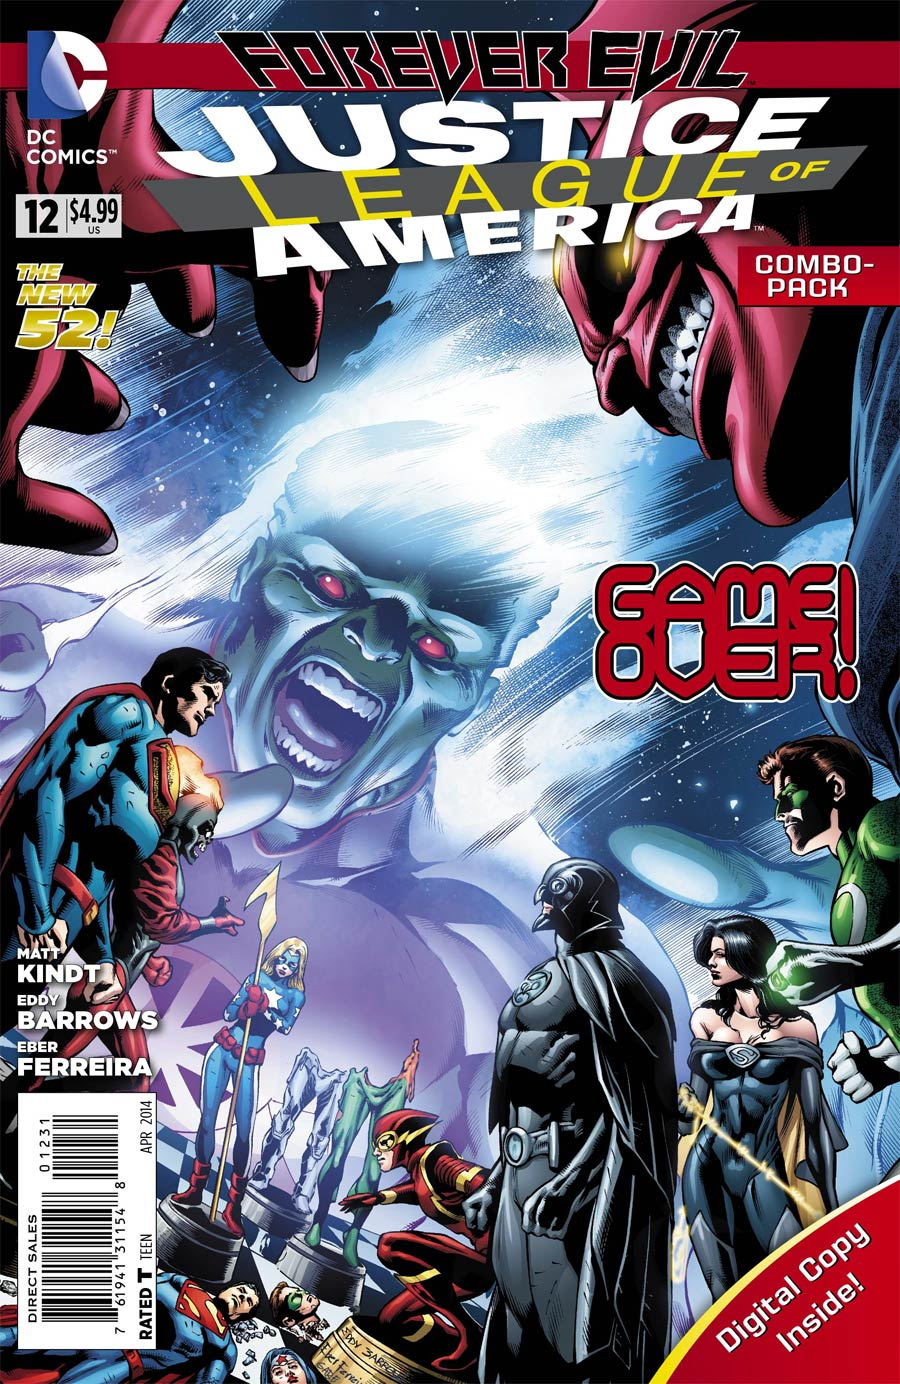 Justice League Of America Vol 3 #12 Cover B Combo Pack With Polybag (Forever Evil Tie-In)